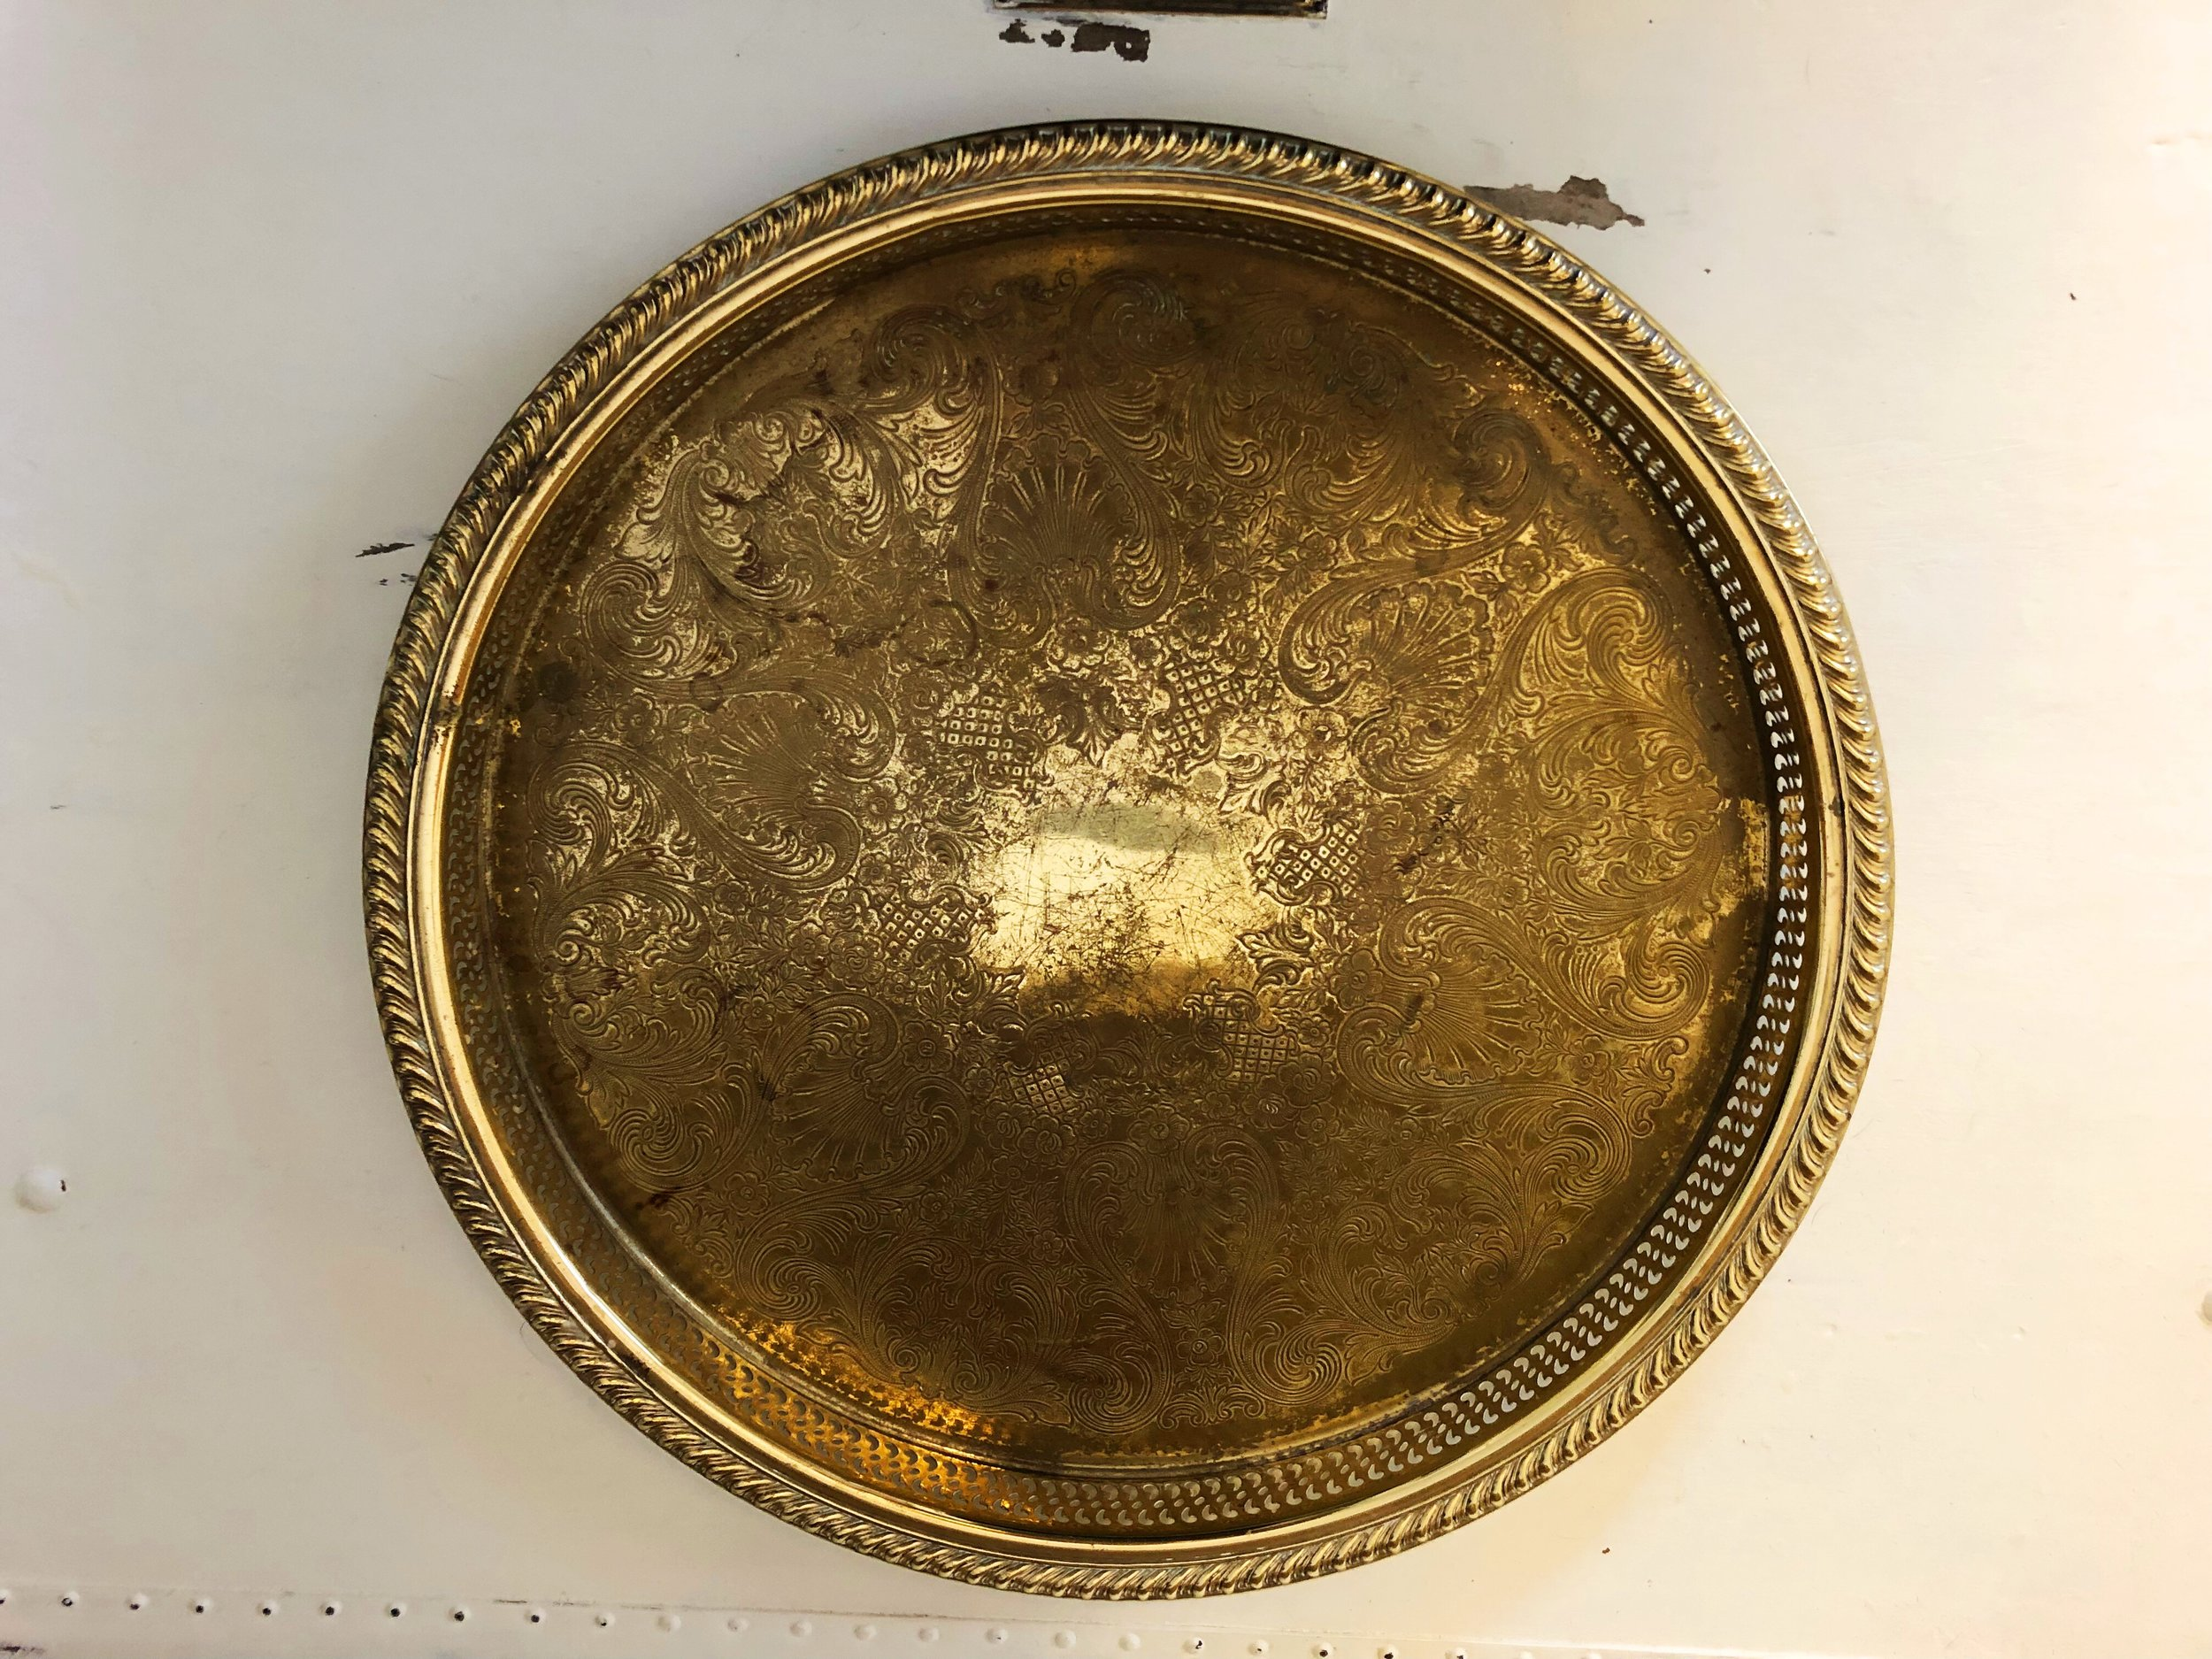 Grab this  vintage brass tray  with this amazing patina for $25.